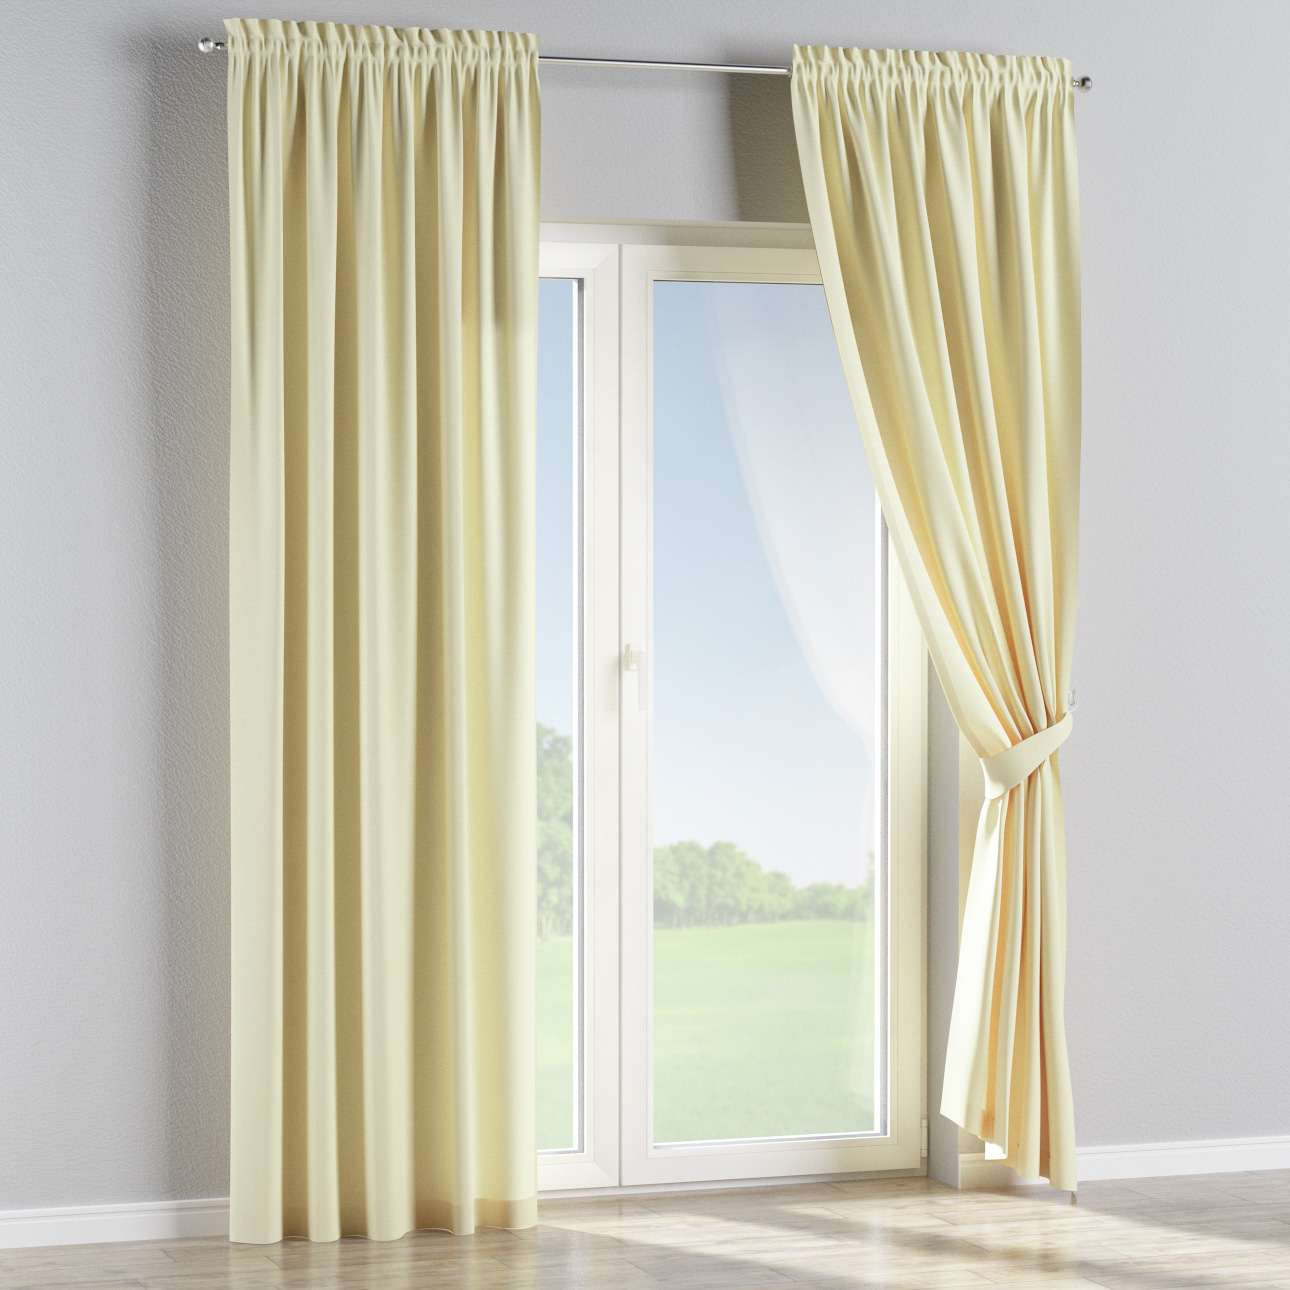 Slot and frill curtains in collection Panama Cotton, fabric: 702-29